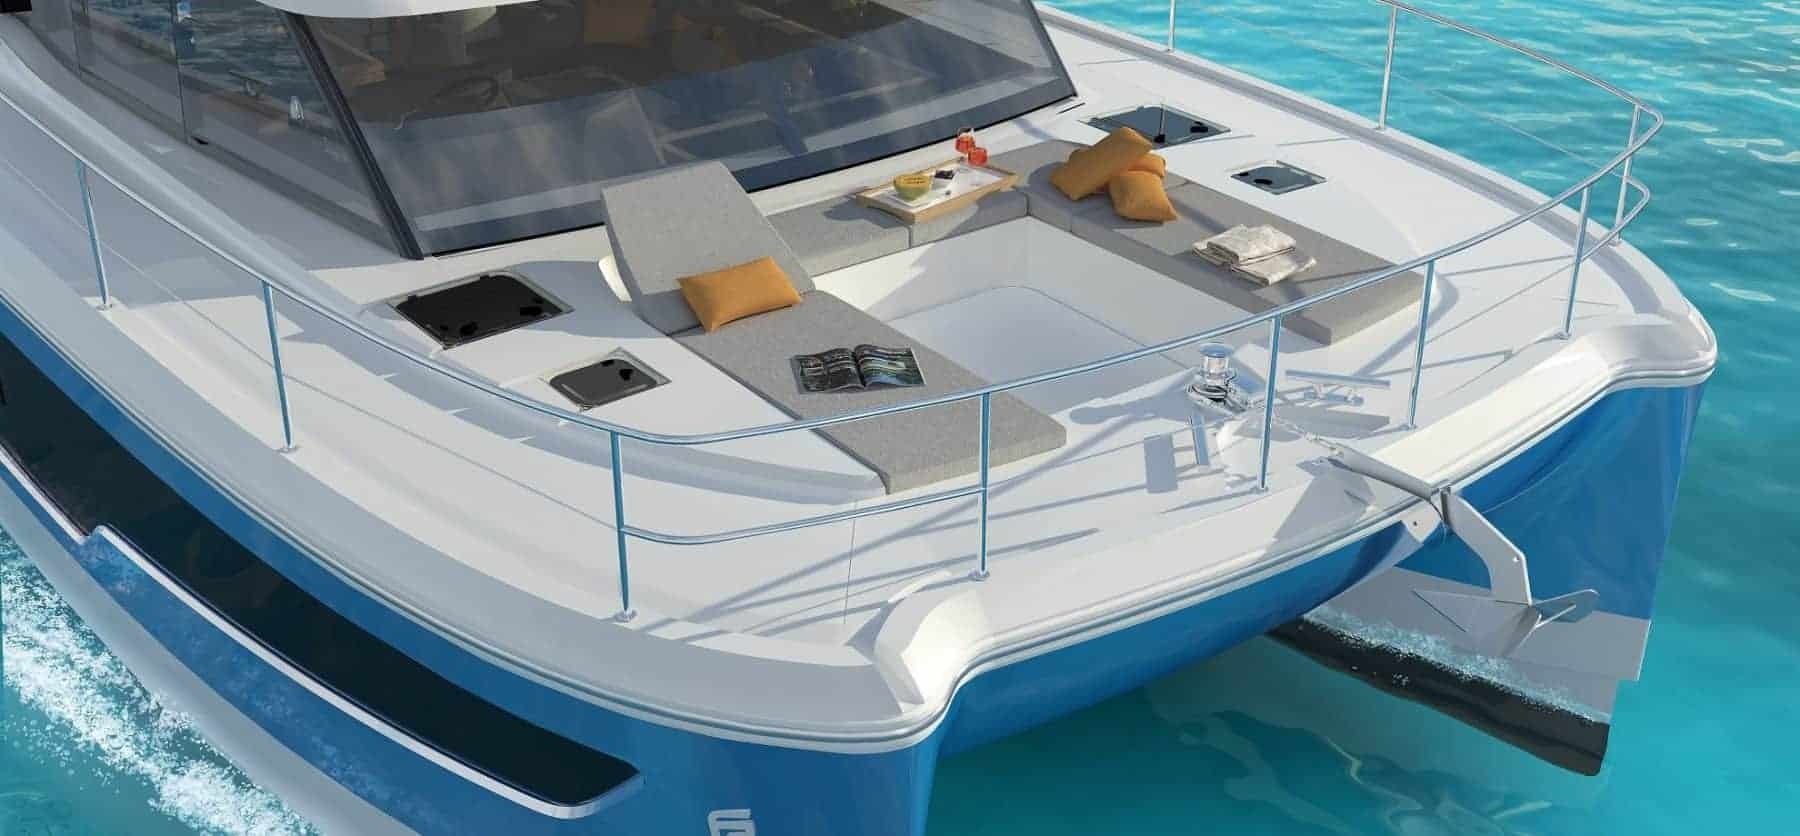 The stylish front deck of a Fountaine Pajot Motor Yacht 40 with magazines and a tray of fruits on the loungers